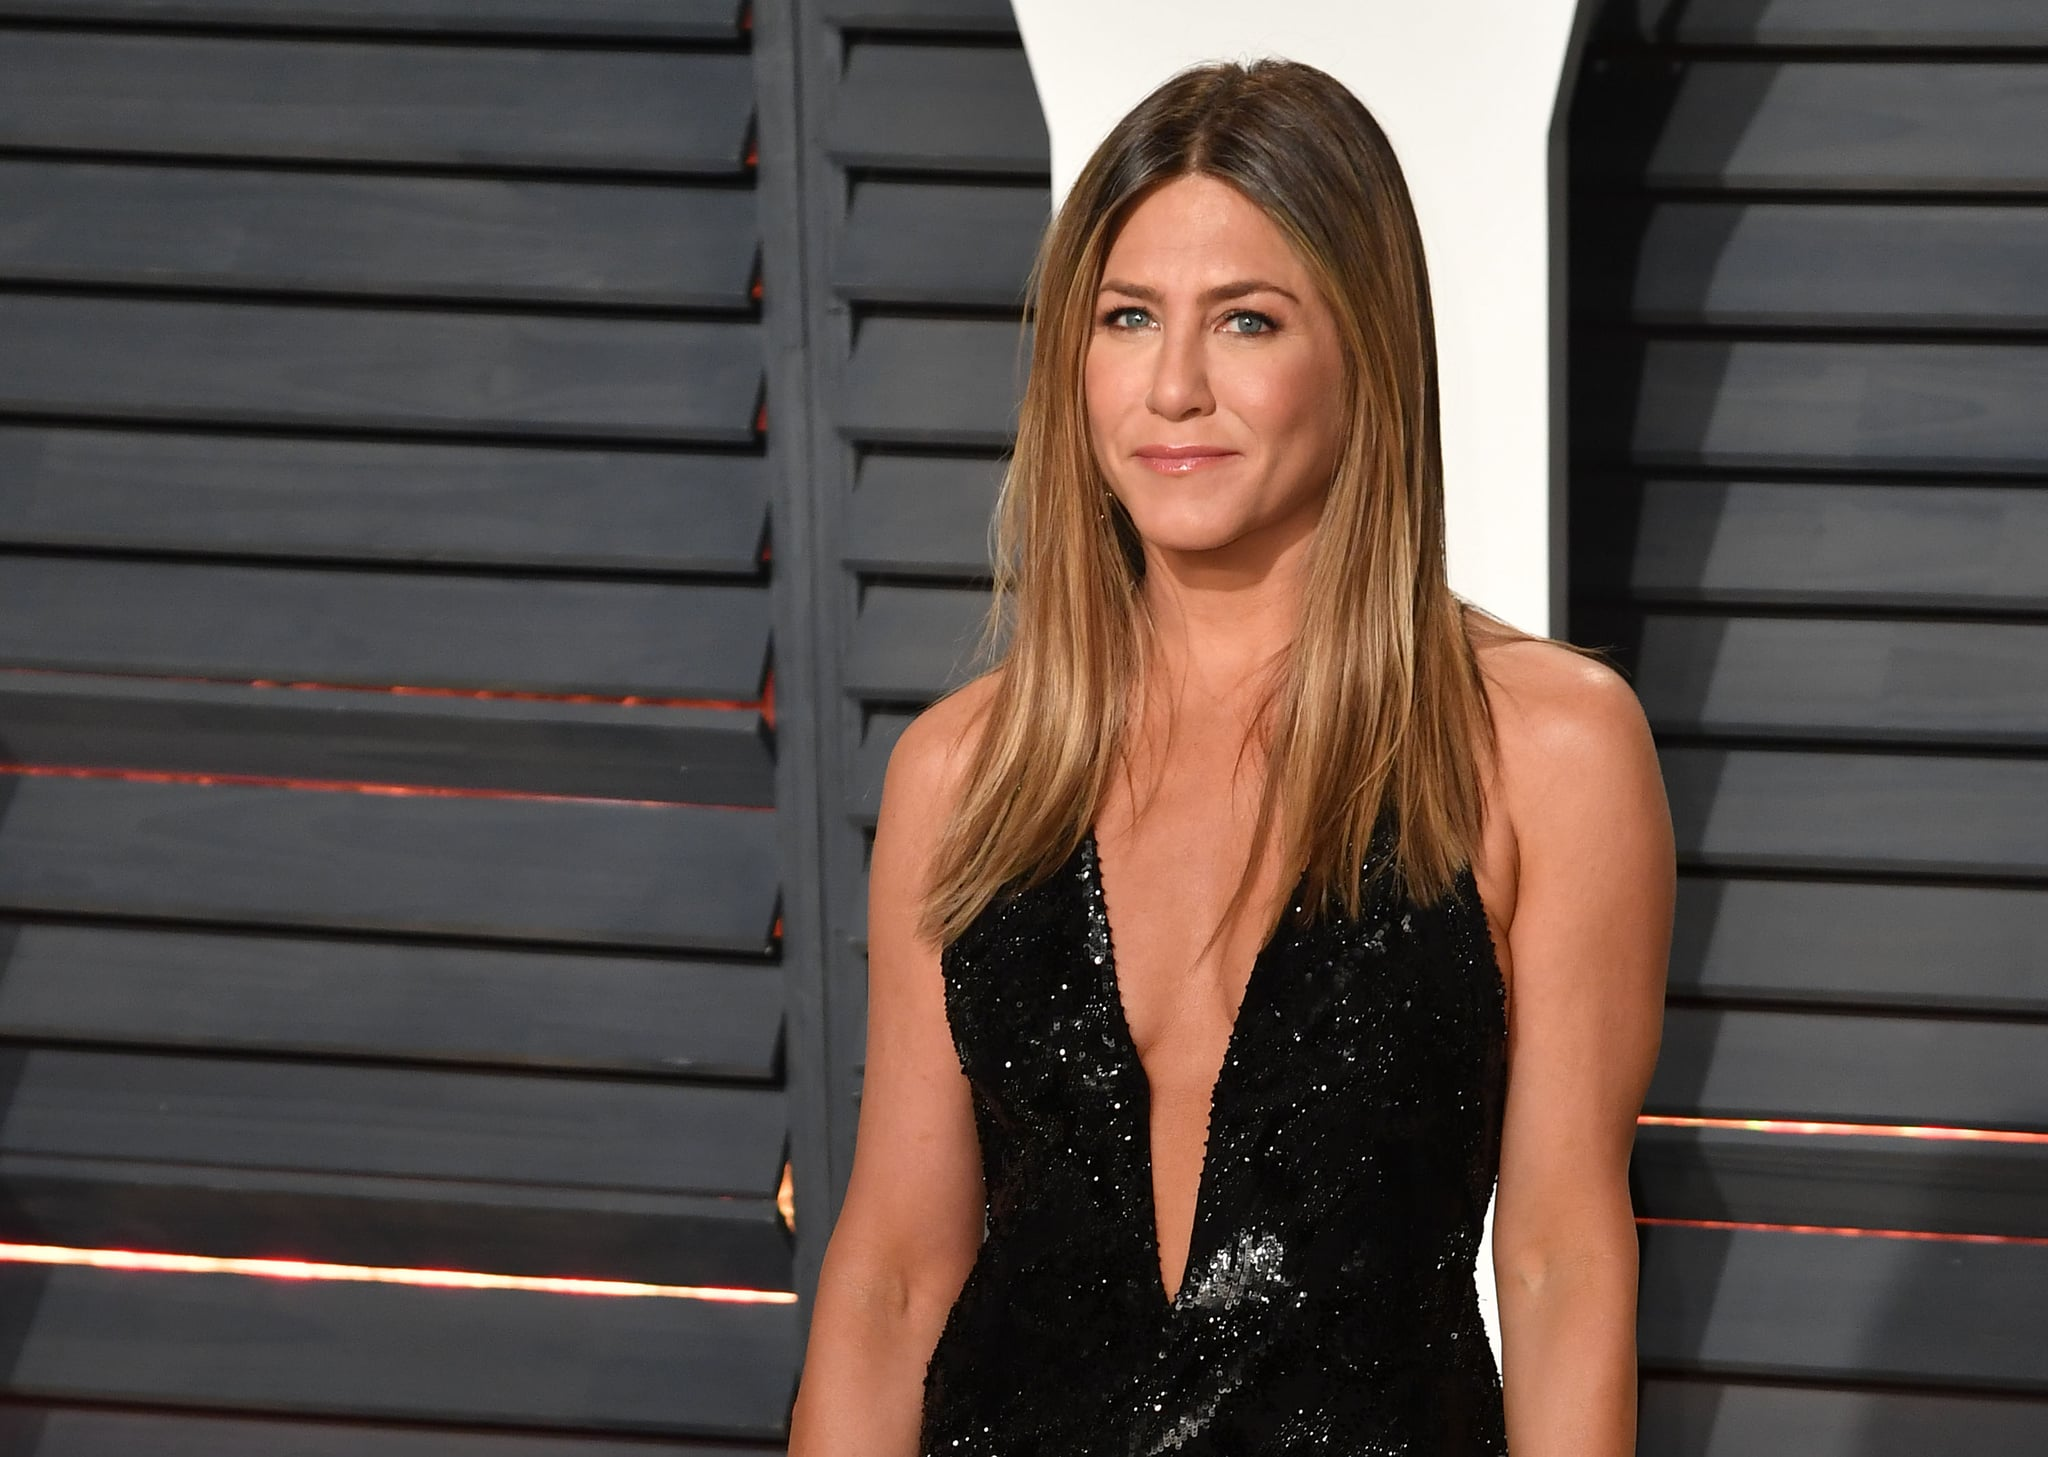 BEVERLY HILLS, CA - FEBRUARY 26:  Actress Jennifer Aniston attends the 2017 Vanity Fair Oscar Party hosted by Graydon Carter at Wallis Annenberg Center for the Performing Arts on February 26, 2017 in Beverly Hills, California.  (Photo by C Flanigan/Getty Images)